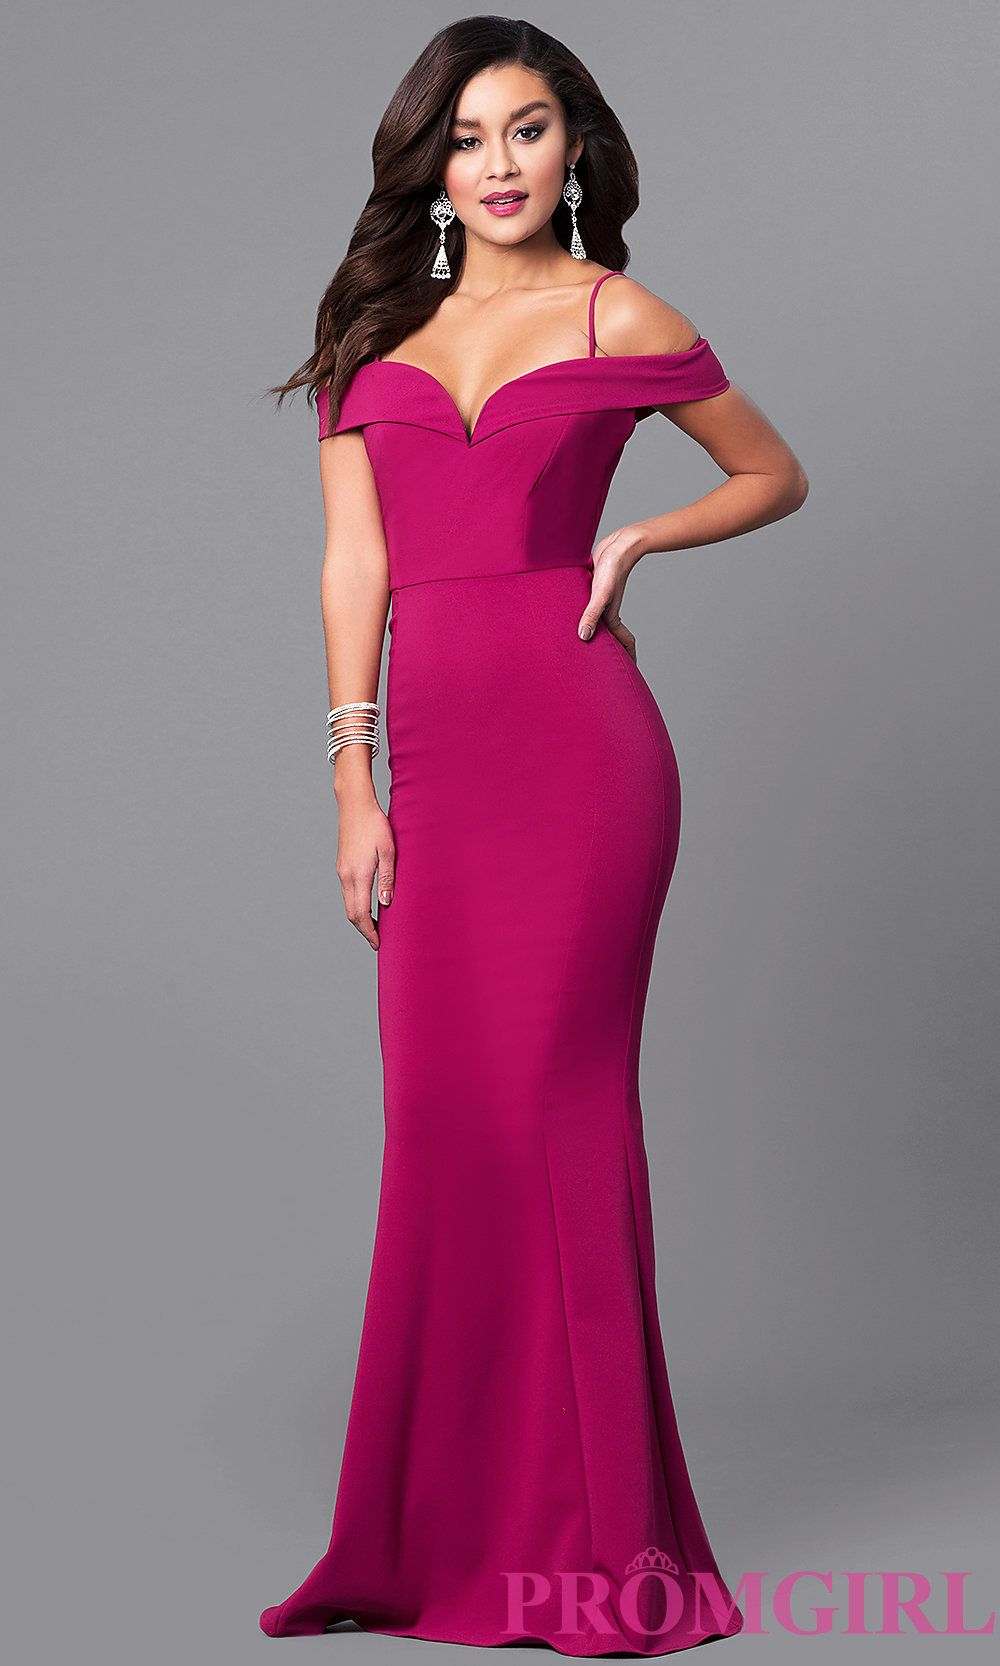 97b32c60b69a7a Sleek evening gowns with sweetheart necklines, spaghetti straps and long  mermaid style skirts. I like Style MCR-1562 from PromGirl.com, do you like?